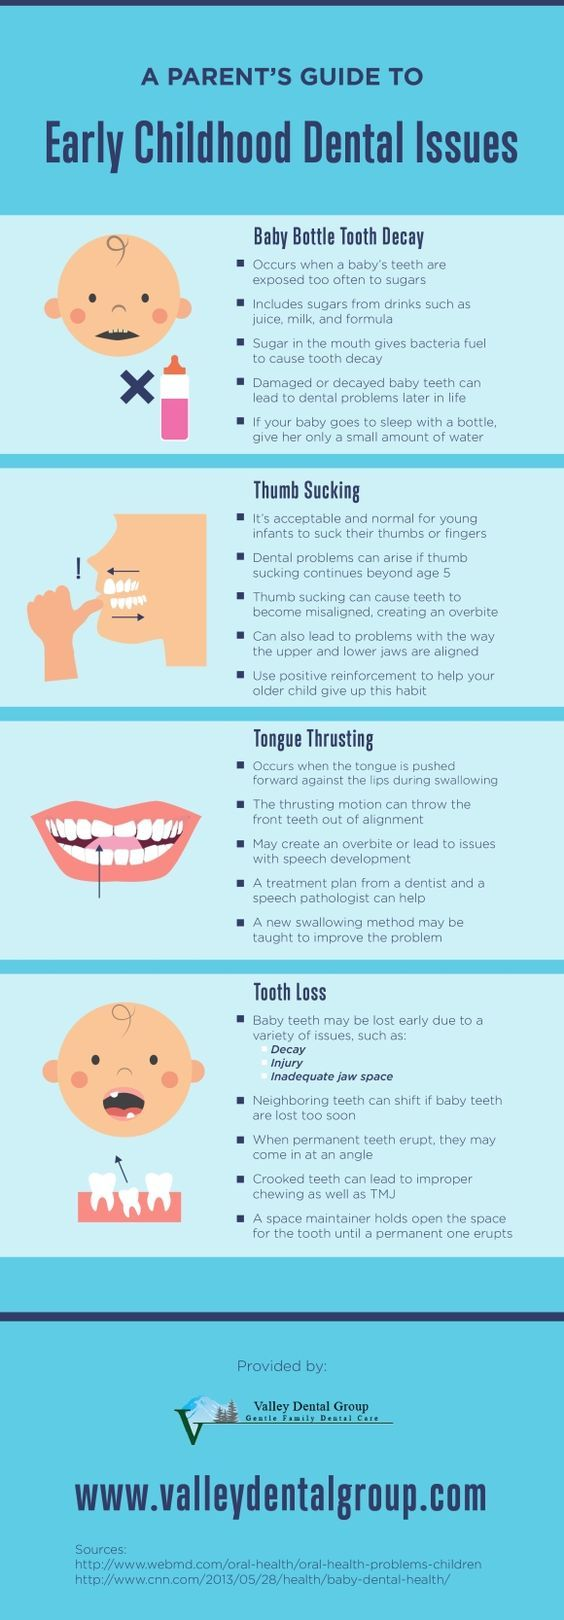 Parents watch out for these early dental Issues including: baby bottle tooth decay, thumb sucking, tongue thrusting and tooth loss!